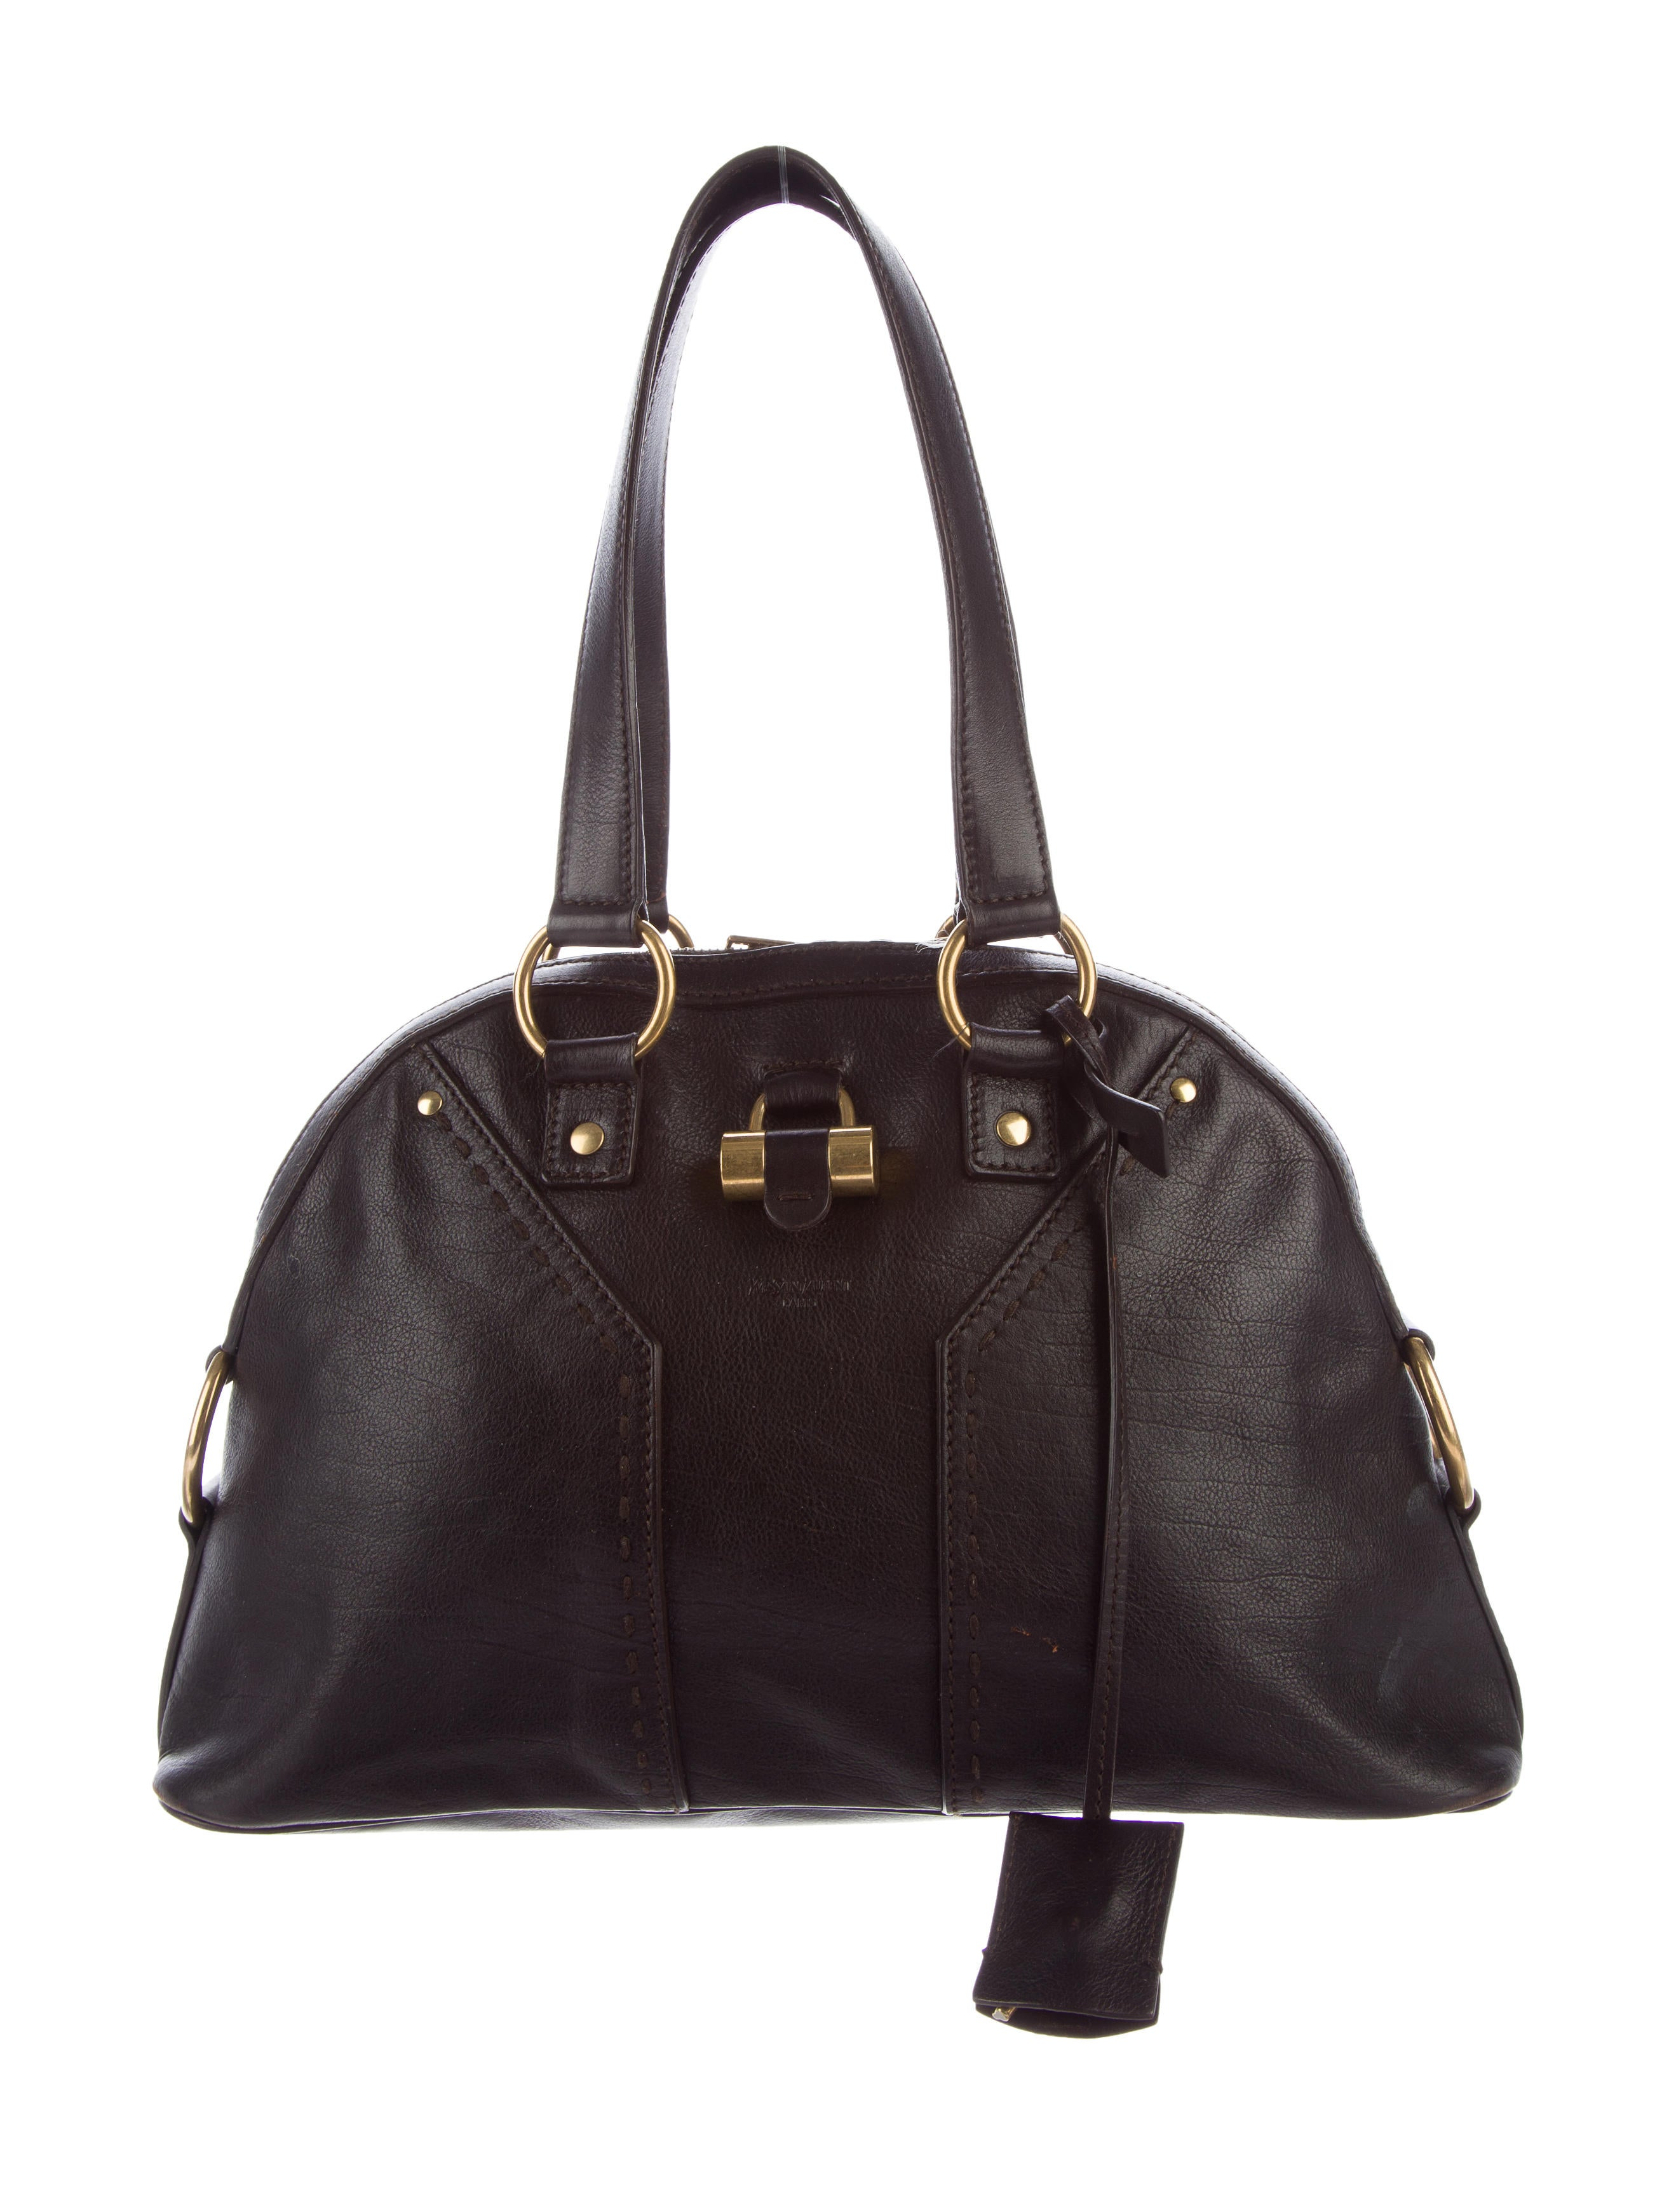 Yves Saint Laurent Small Leather Muse Bag